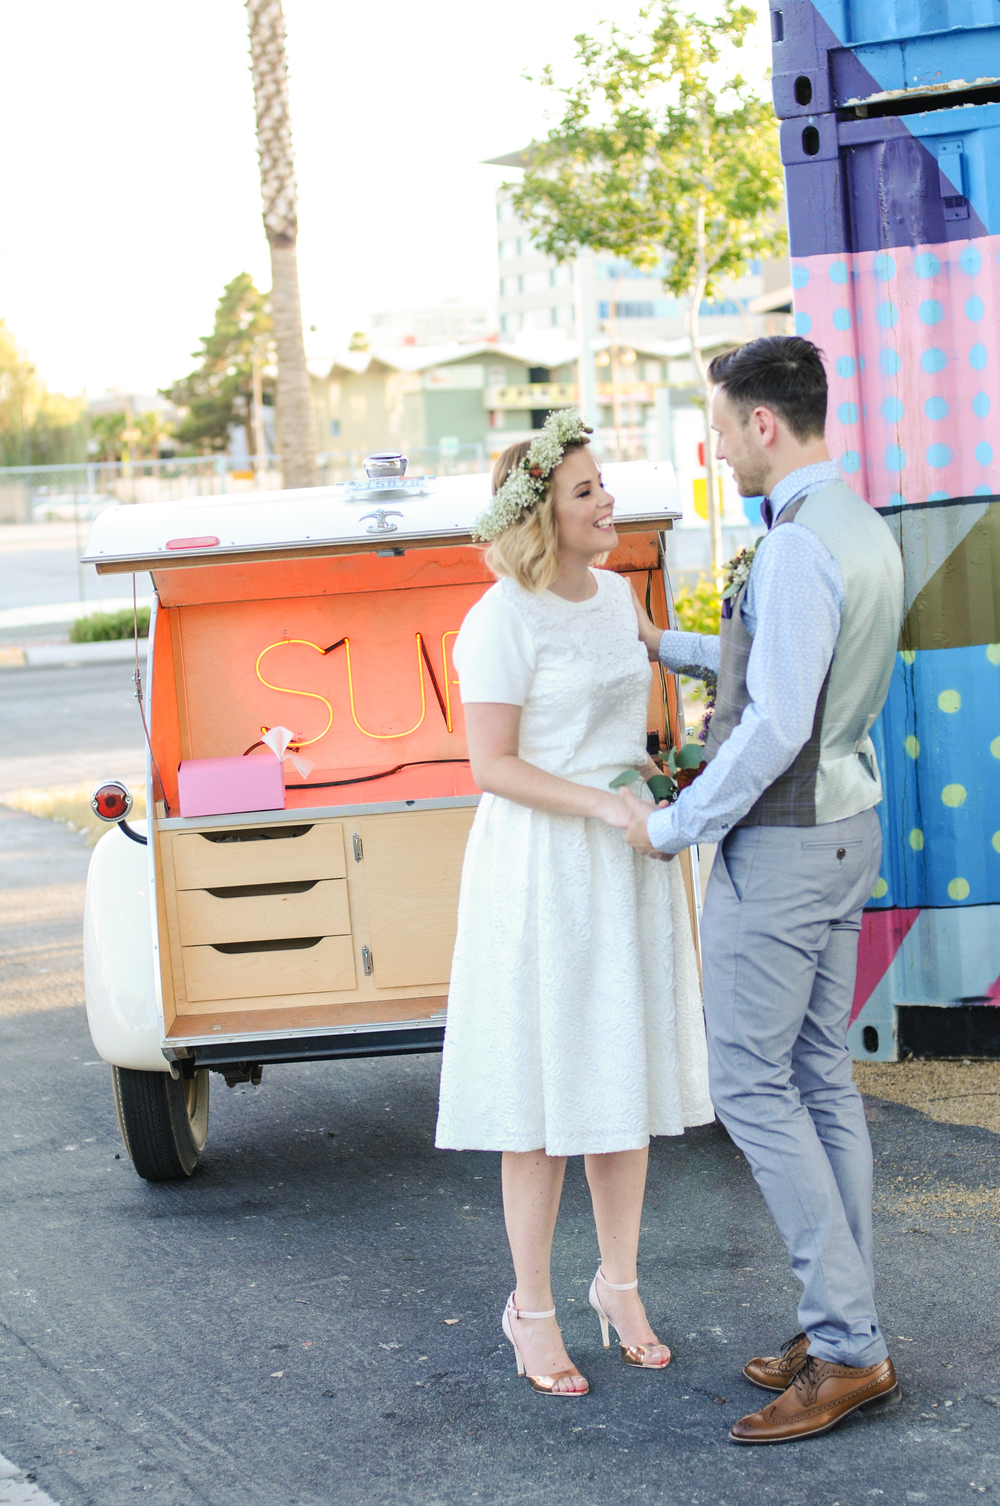 pop up wedding, elopement, las vegas elopement, las vegas wedding, downtown las vegas wedding, flora pop wedding, las vegas, ashley marie myers, fora pop up wedding, flower crown wedding, simple bride, destination wedding